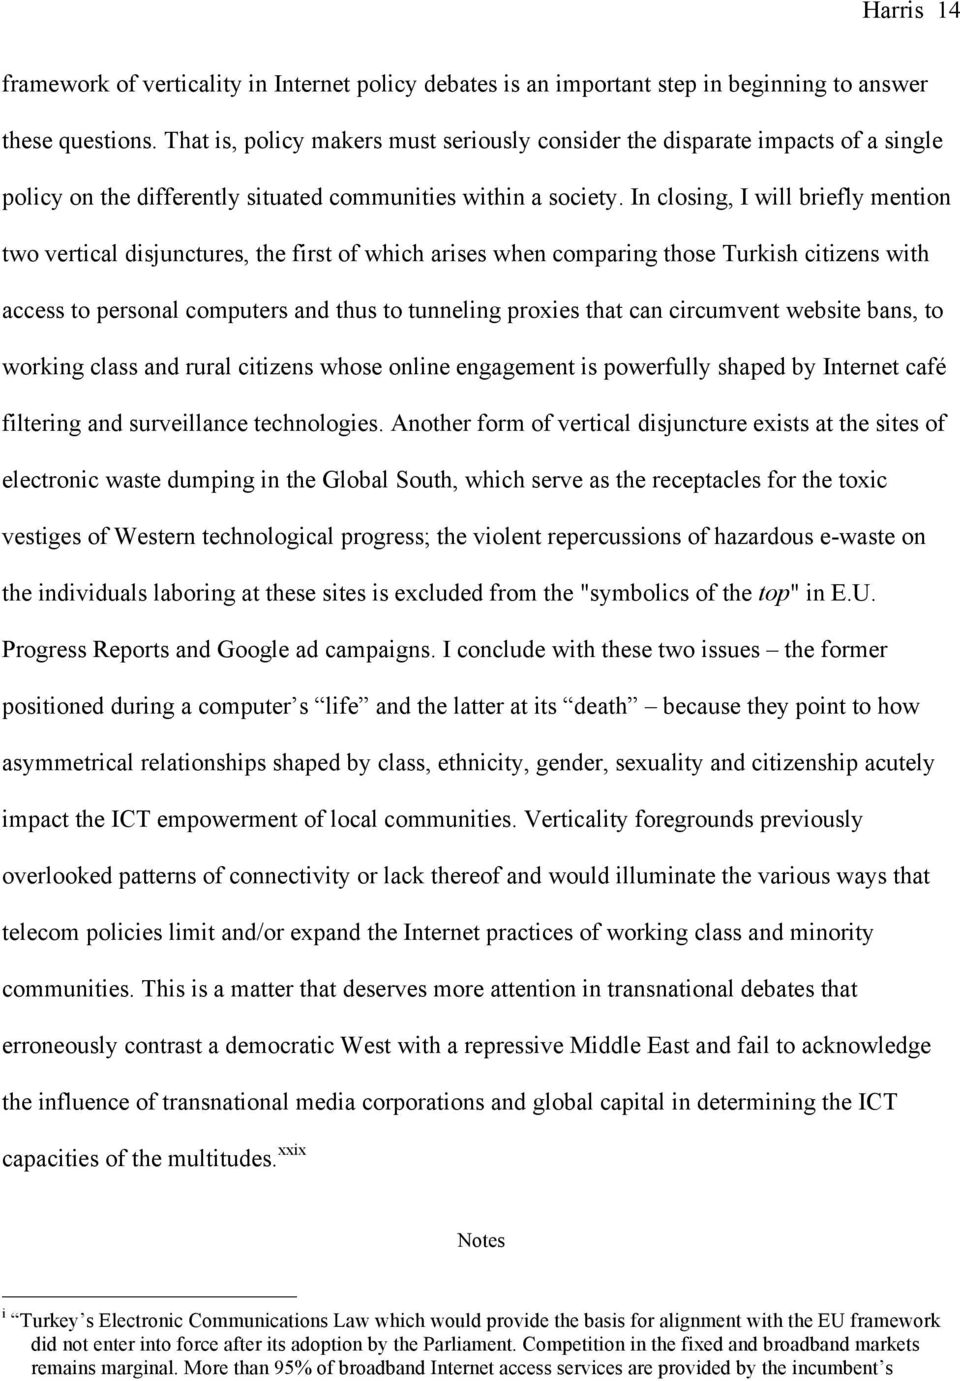 In closing, I will briefly mention two vertical disjunctures, the first of which arises when comparing those Turkish citizens with access to personal computers and thus to tunneling proxies that can